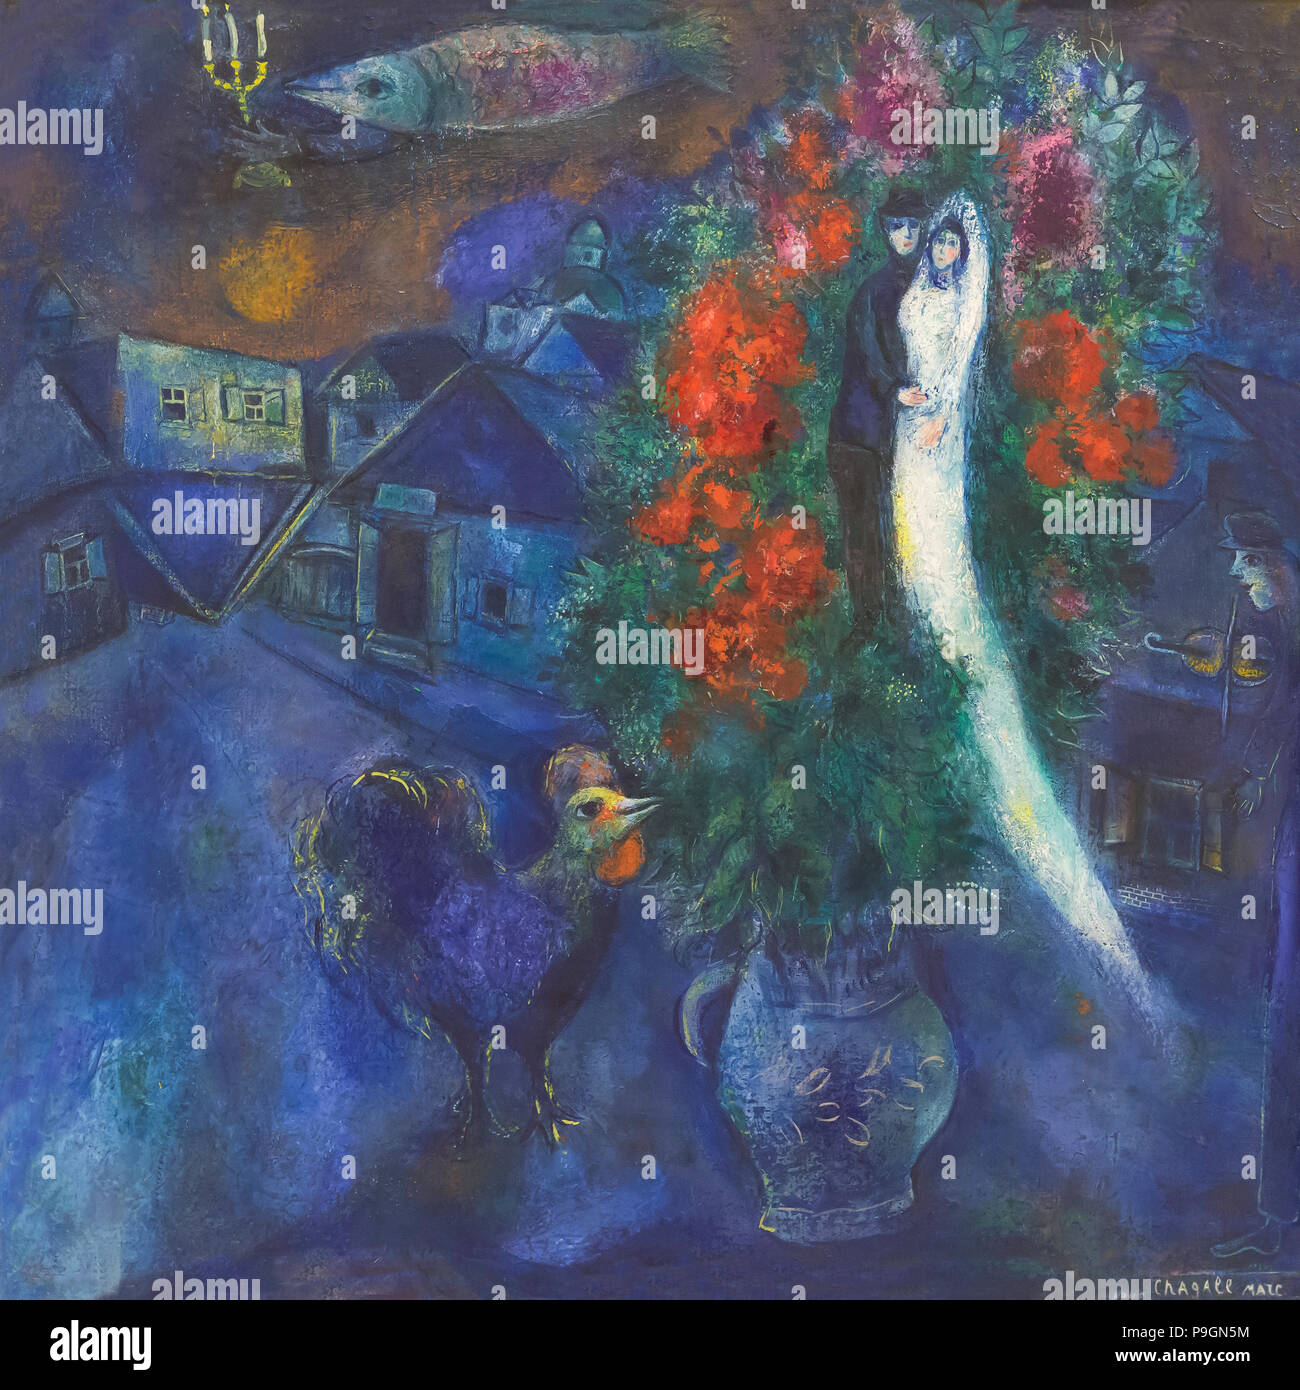 The Flying Fish, Marc Chagall, 1948, Albright-Knox Art Gallery, Buffalo, New York, USA, North America Stock Photo